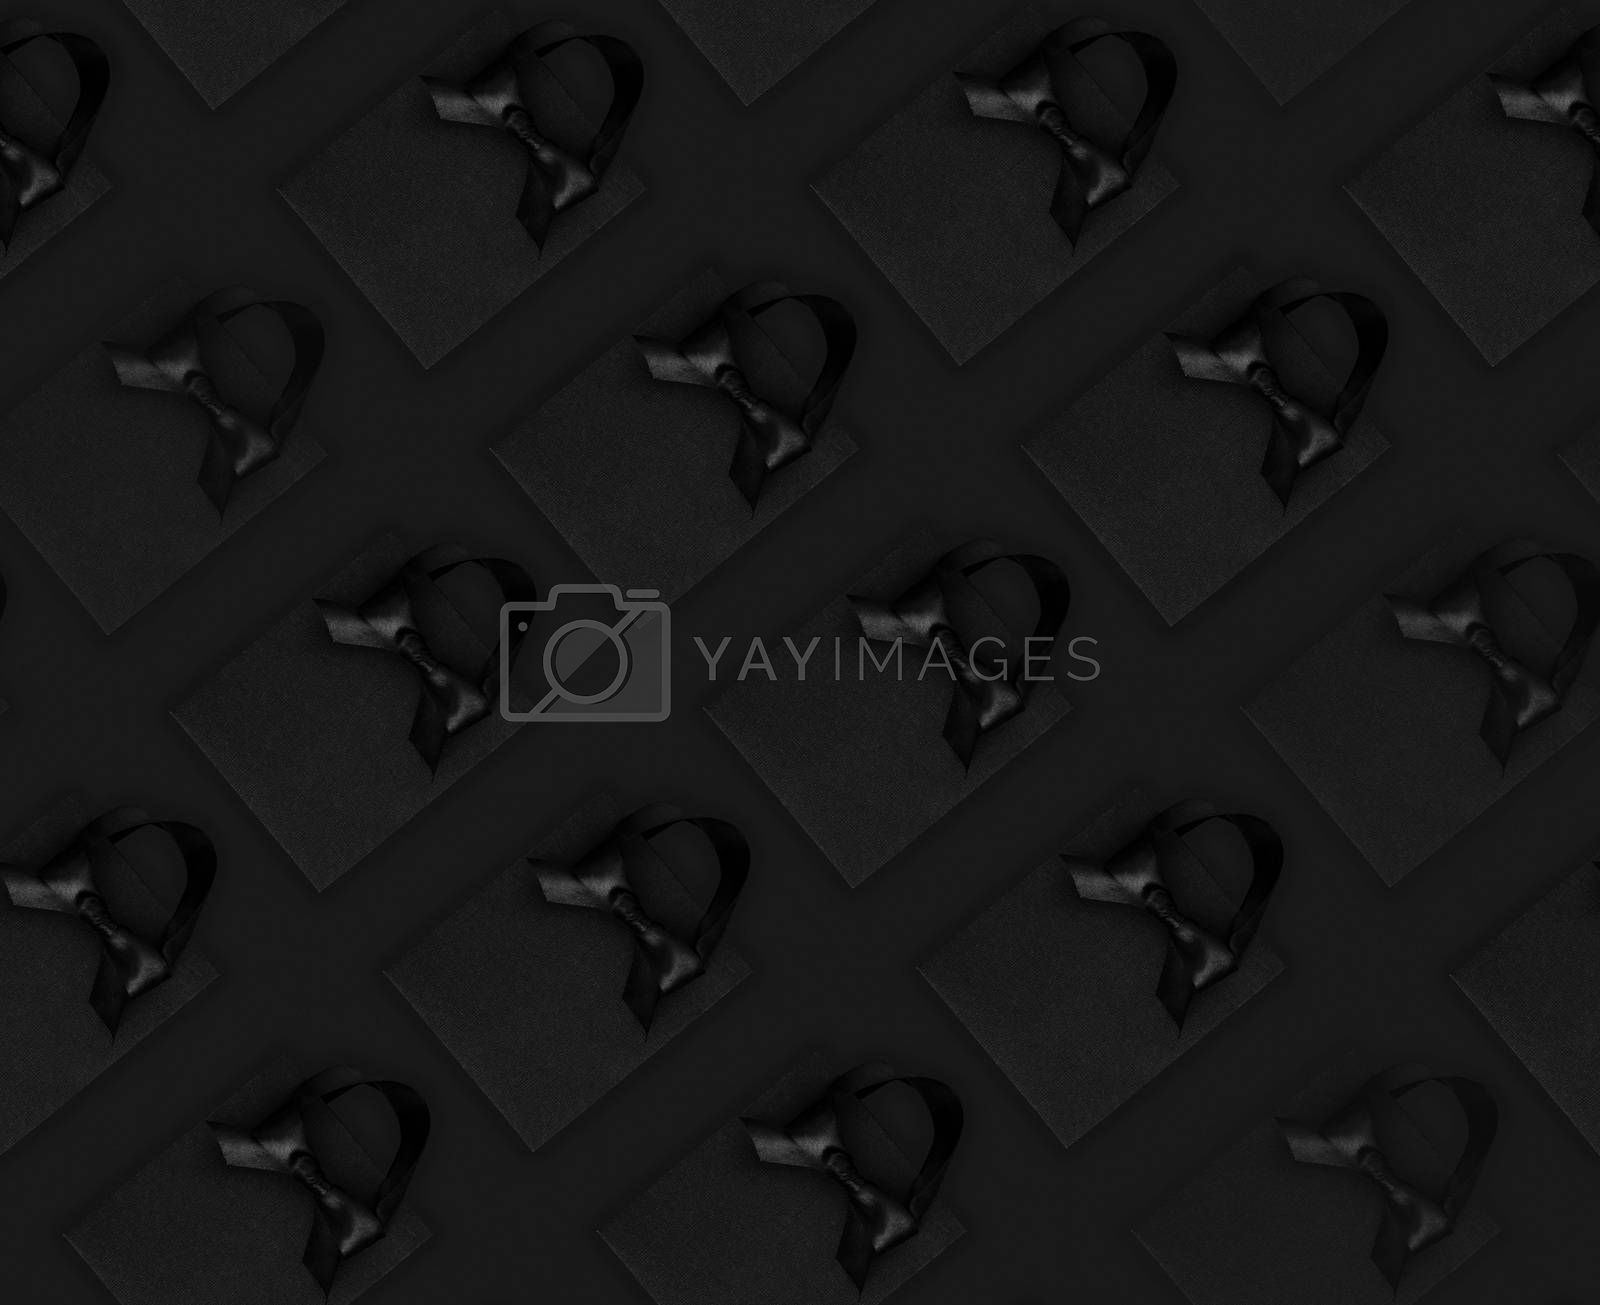 Royalty free image of Black Friday sale seamless background by destillat